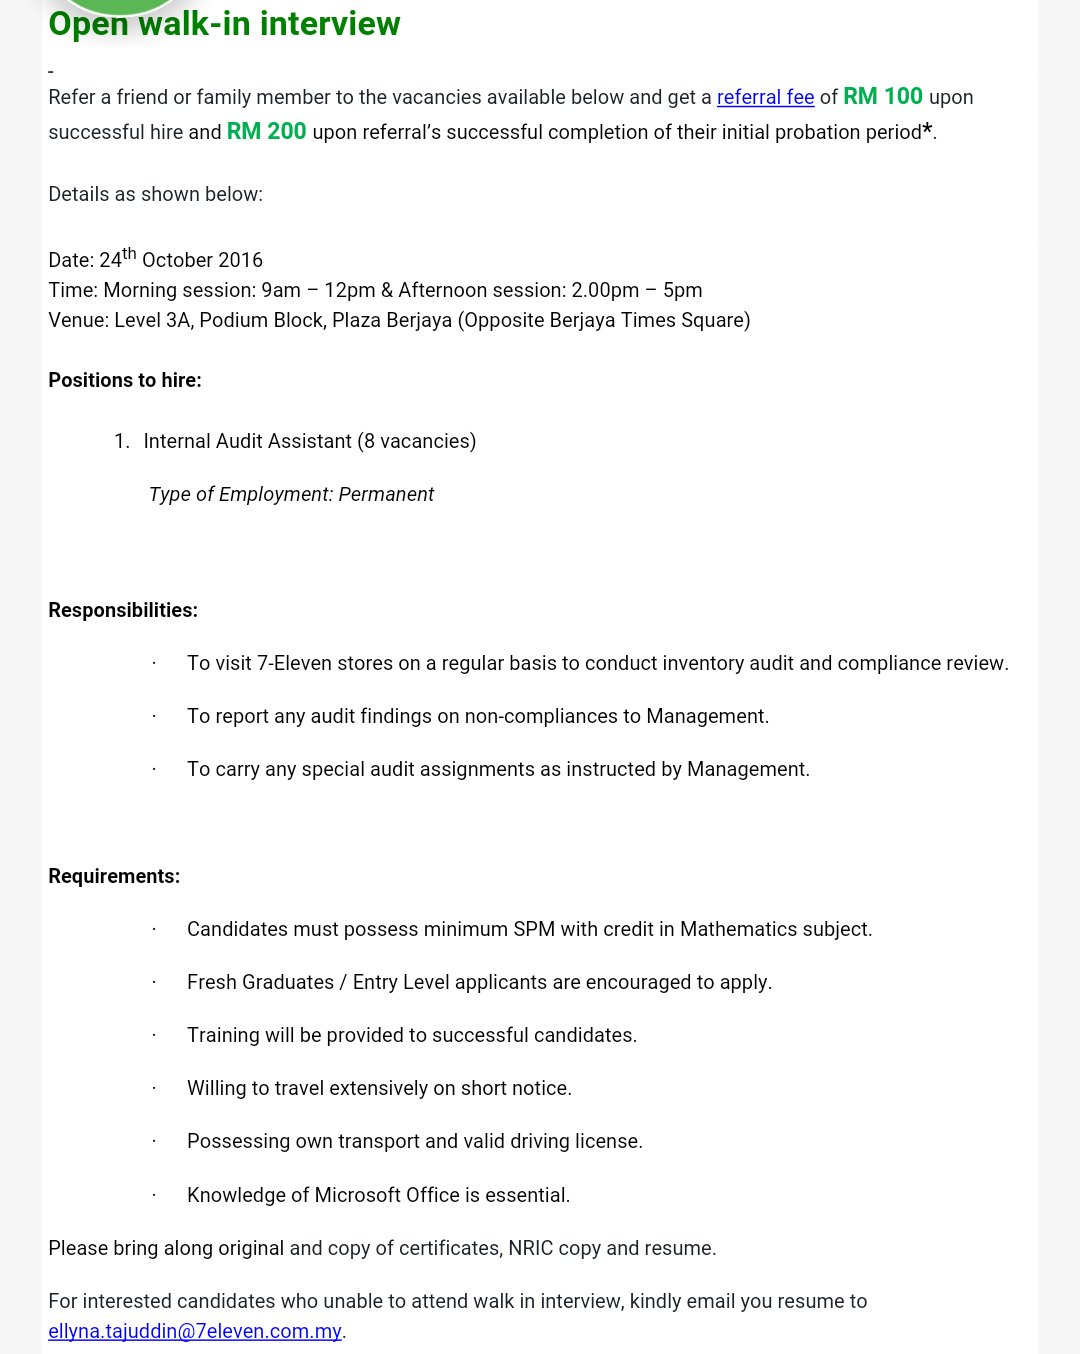 """H a r i t H on Twitter: """"Open walk-in interview at 7-Eleven Malaysia ..."""